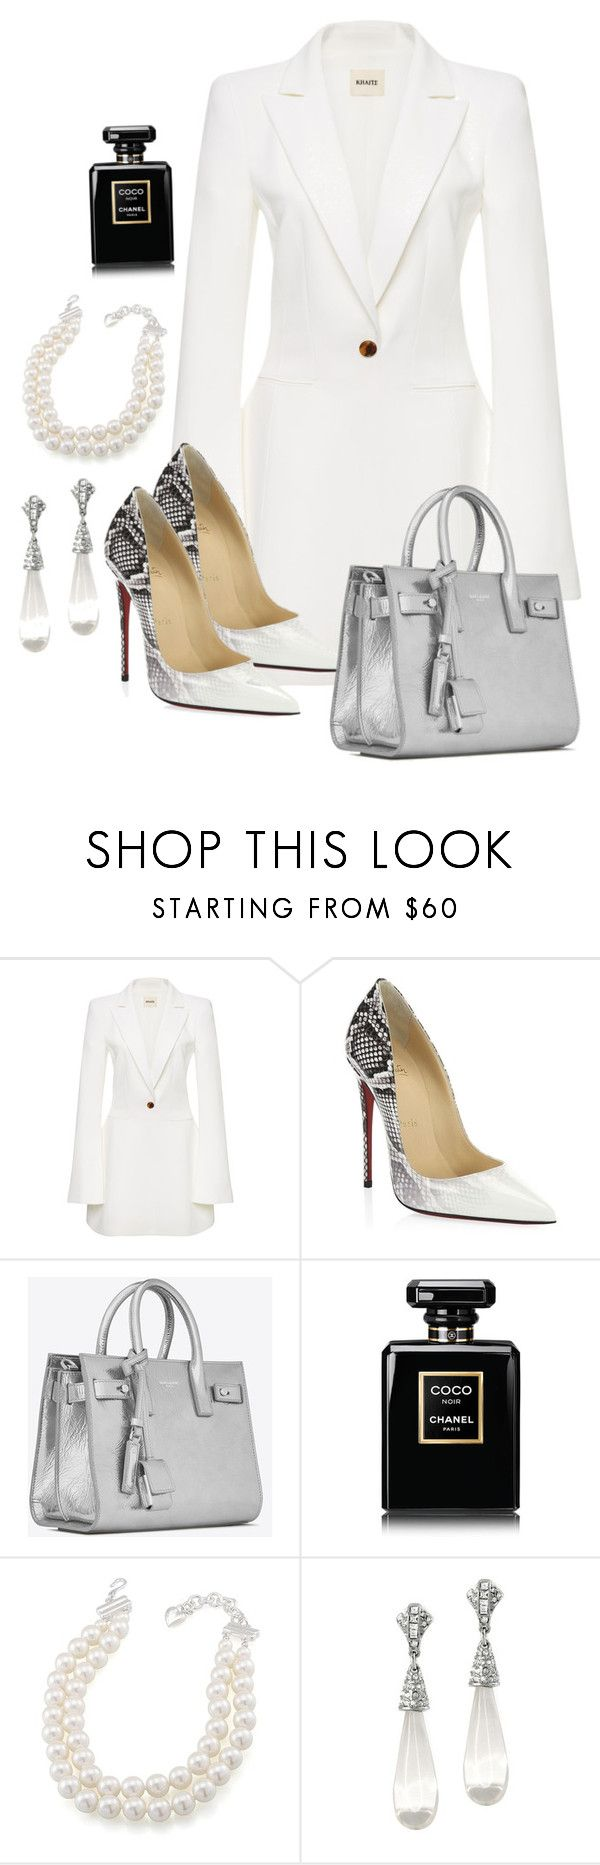 """Untitled #139"" by styledbydonita ❤ liked on Polyvore featuring Khaite, Christian Louboutin, Yves Saint Laurent, Chanel, Carolee and Kenneth Jay Lane"